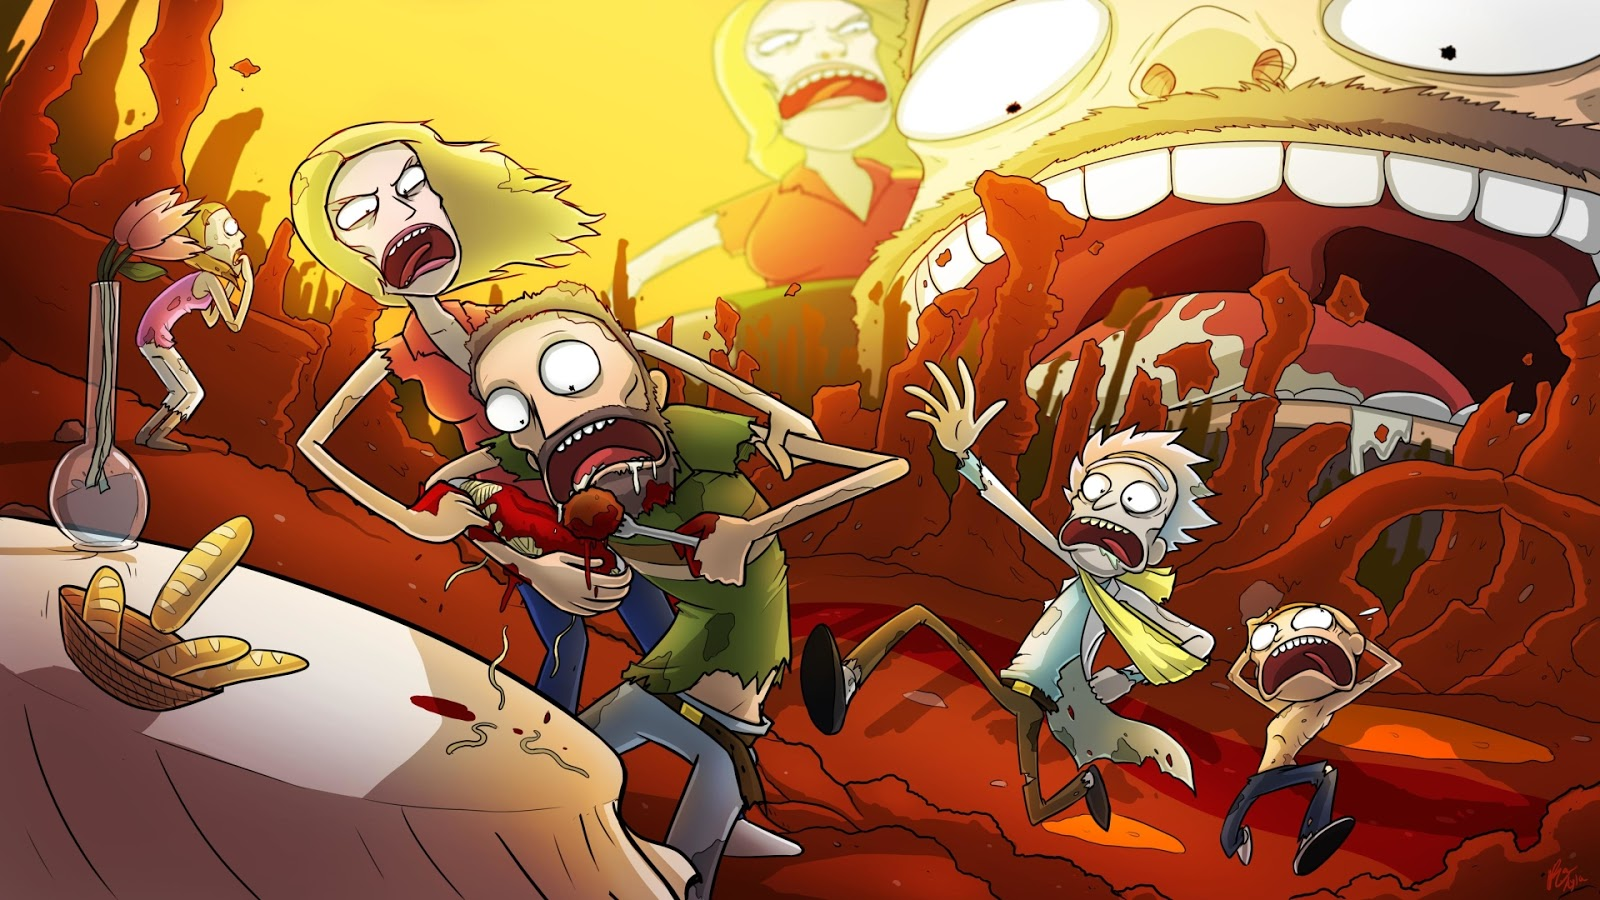 50 1080p Rick and Morty HD Wallpapers 2019 HD Backgrounds For 1600x900